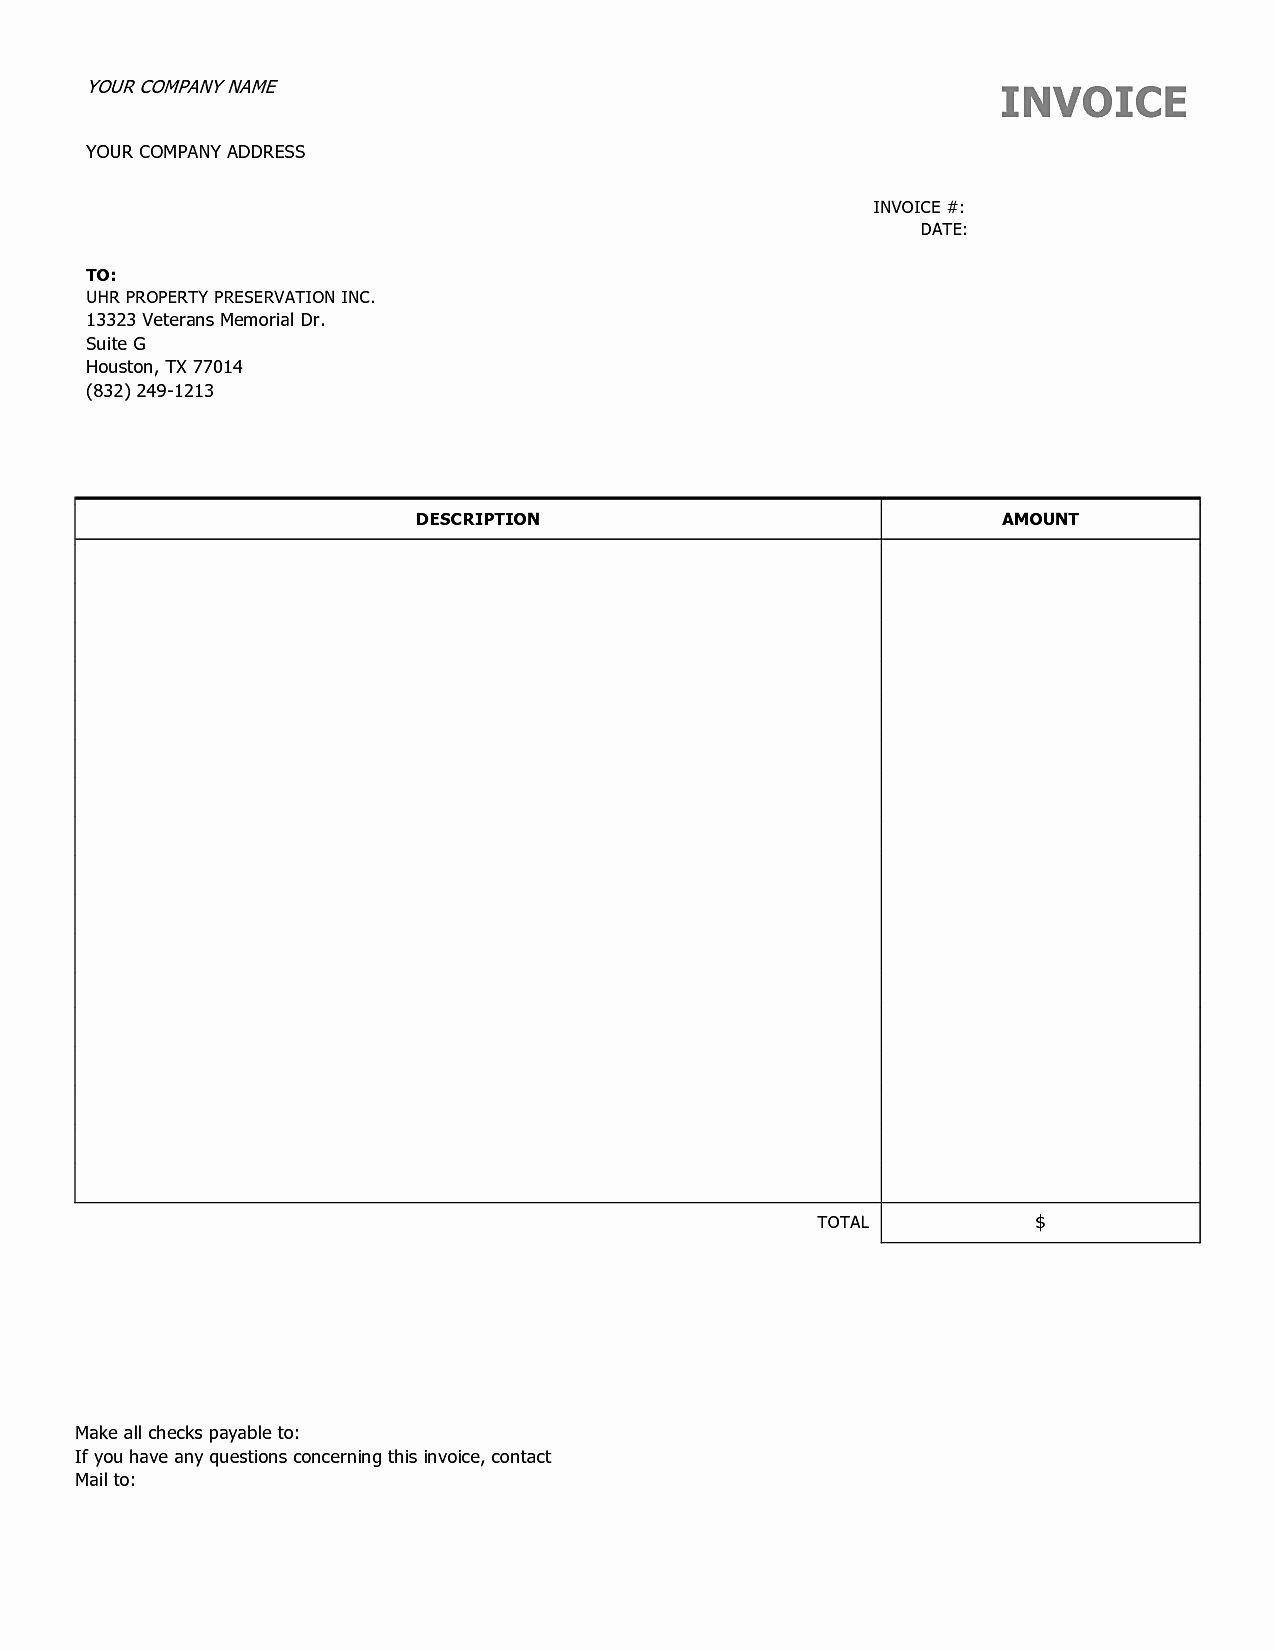 Blank Invoices to Print Mughals